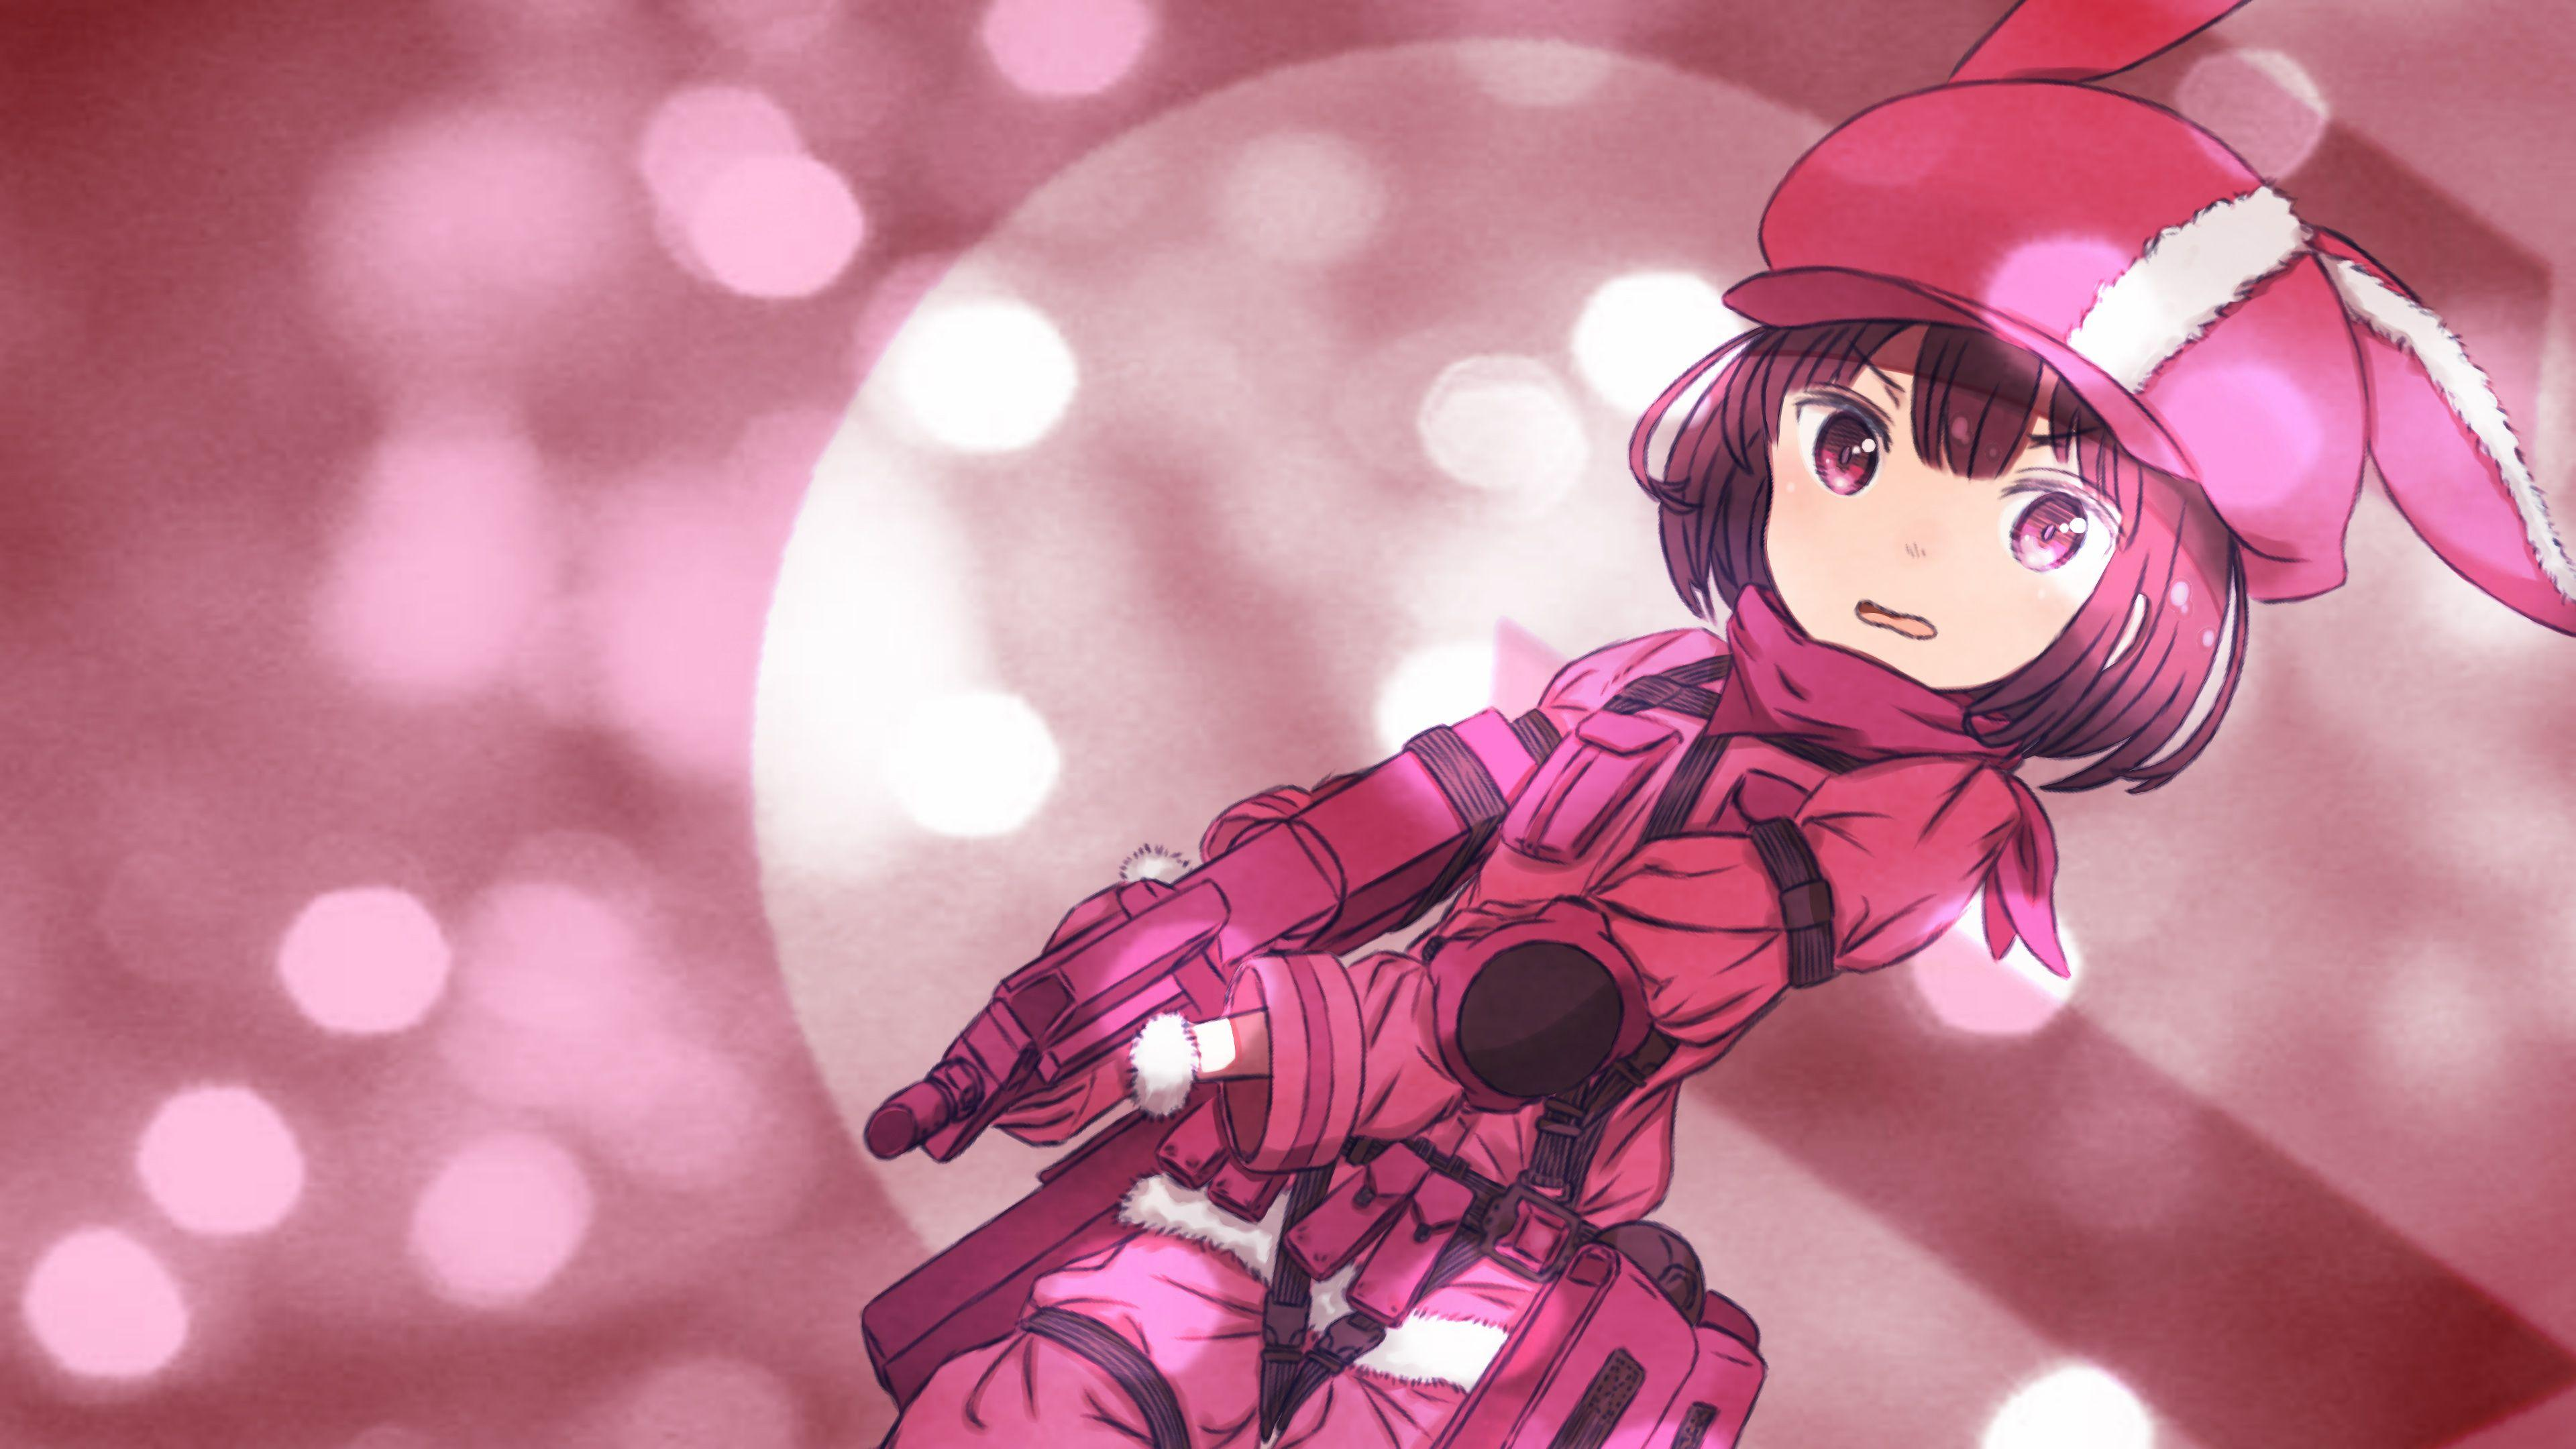 SAO Alternative Gun Gale Online wallpapers 39